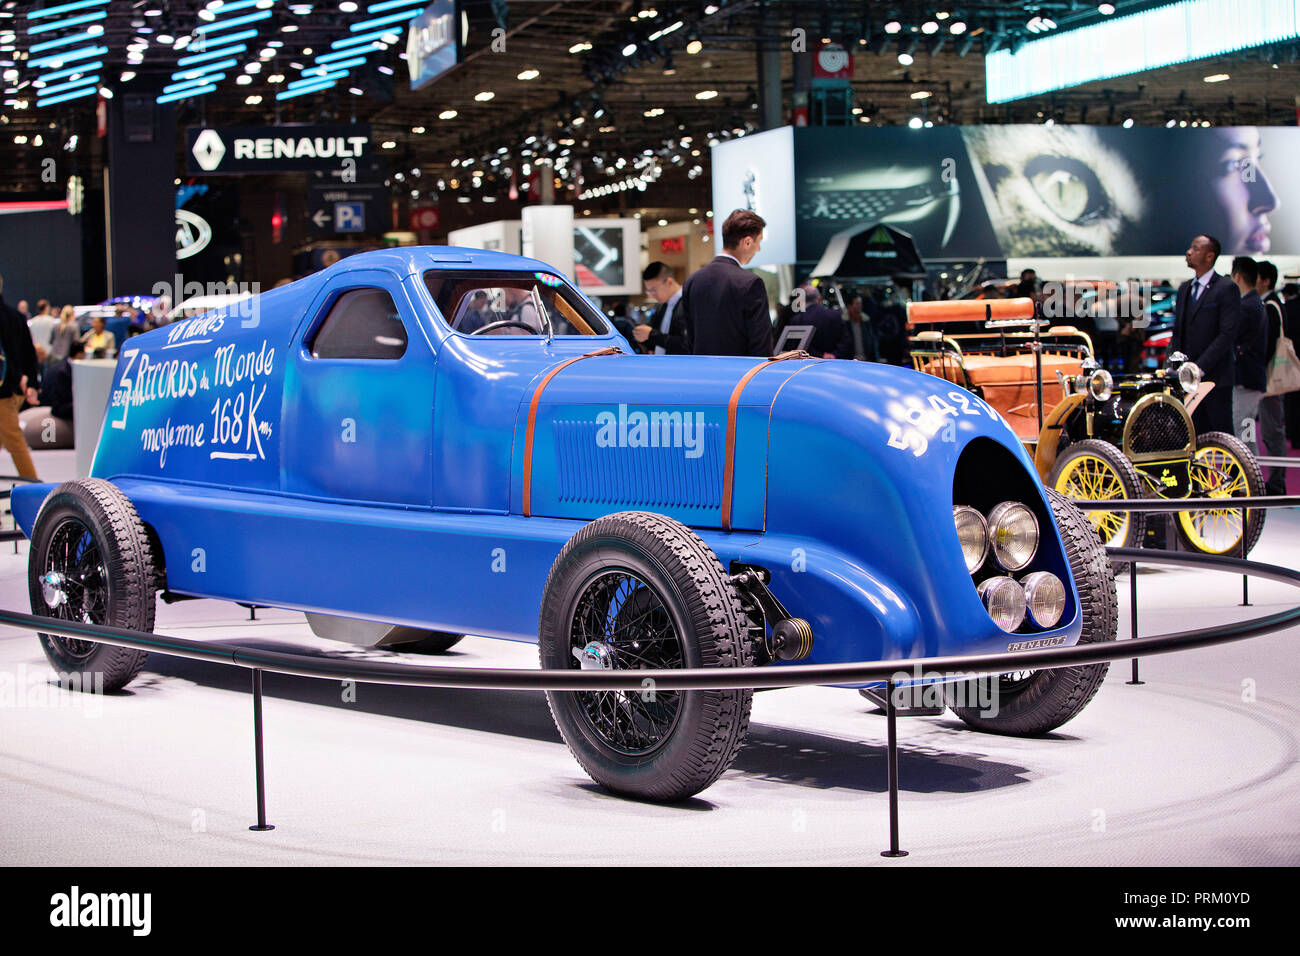 Racing car that broke several speed records is part of Renault exposition during the second press day of the International Motor Show in Paris, France - Stock Image